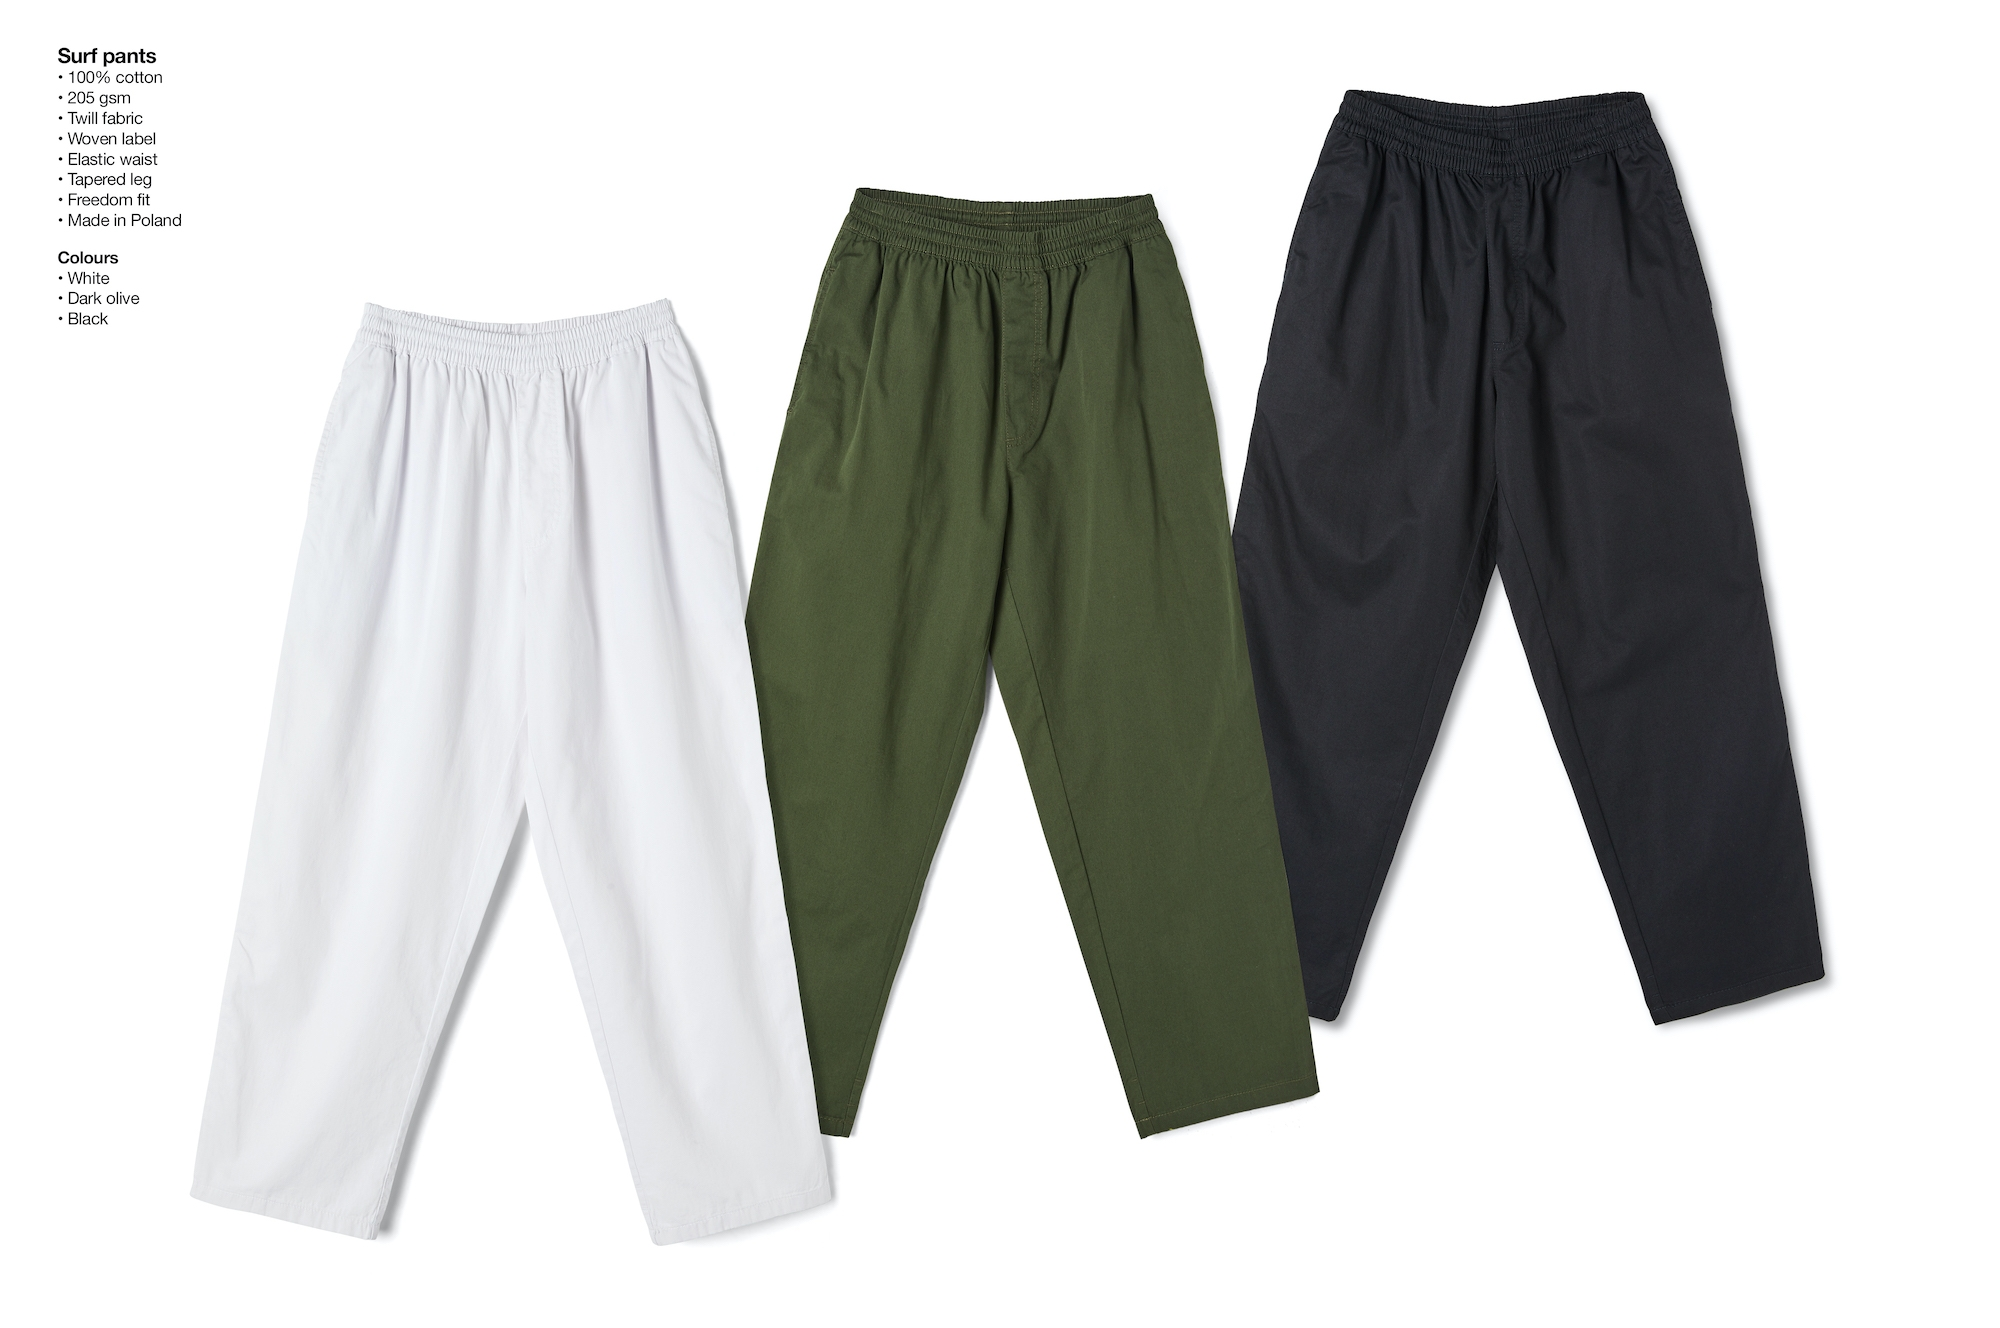 Bonkei Blue – Jake Johnson